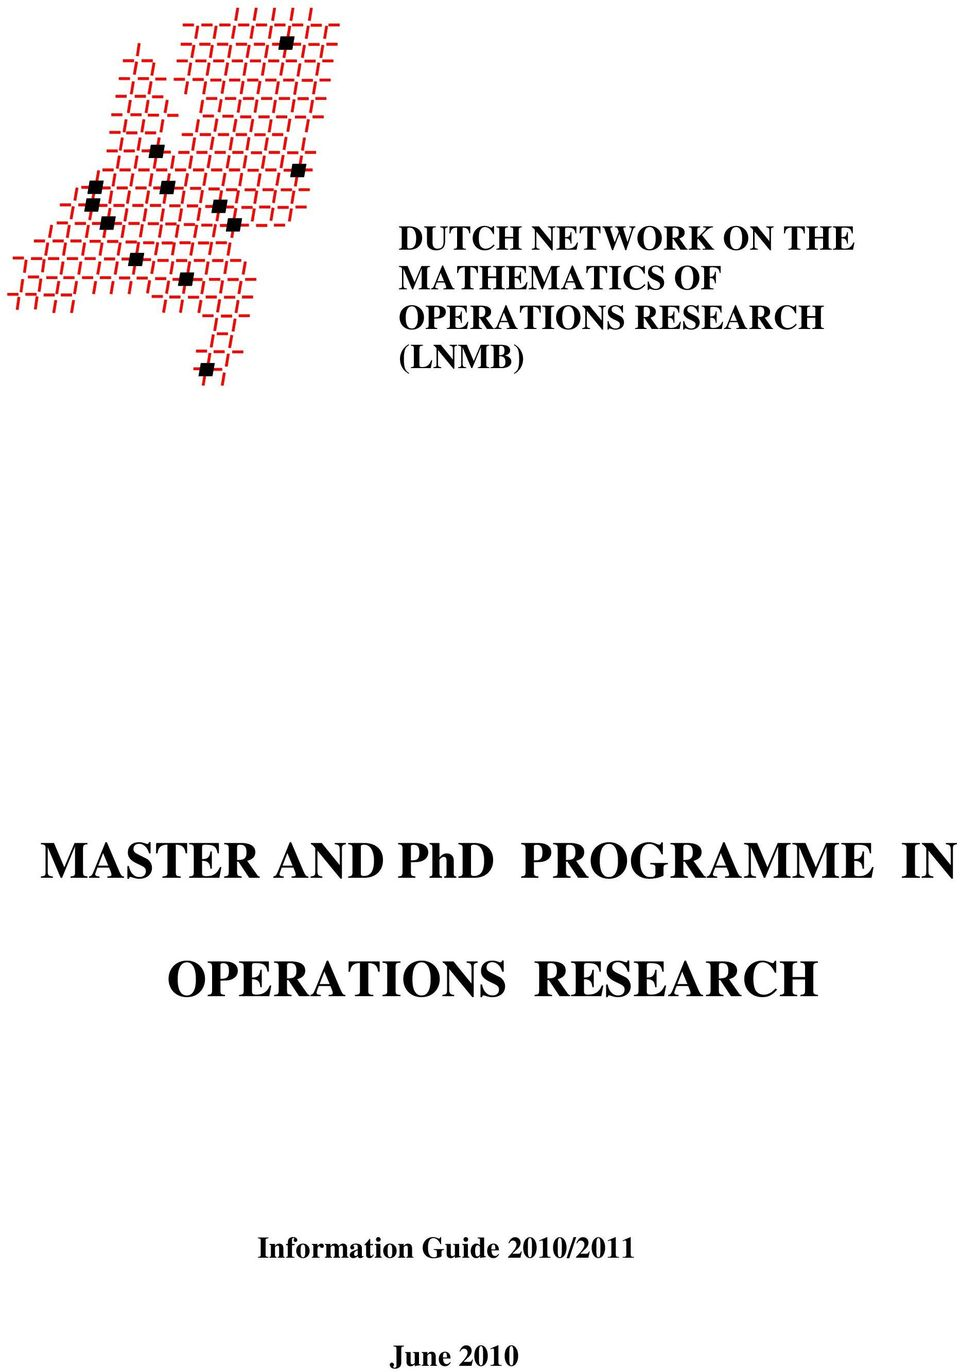 AND PhD PROGRAMME IN OPERATIONS